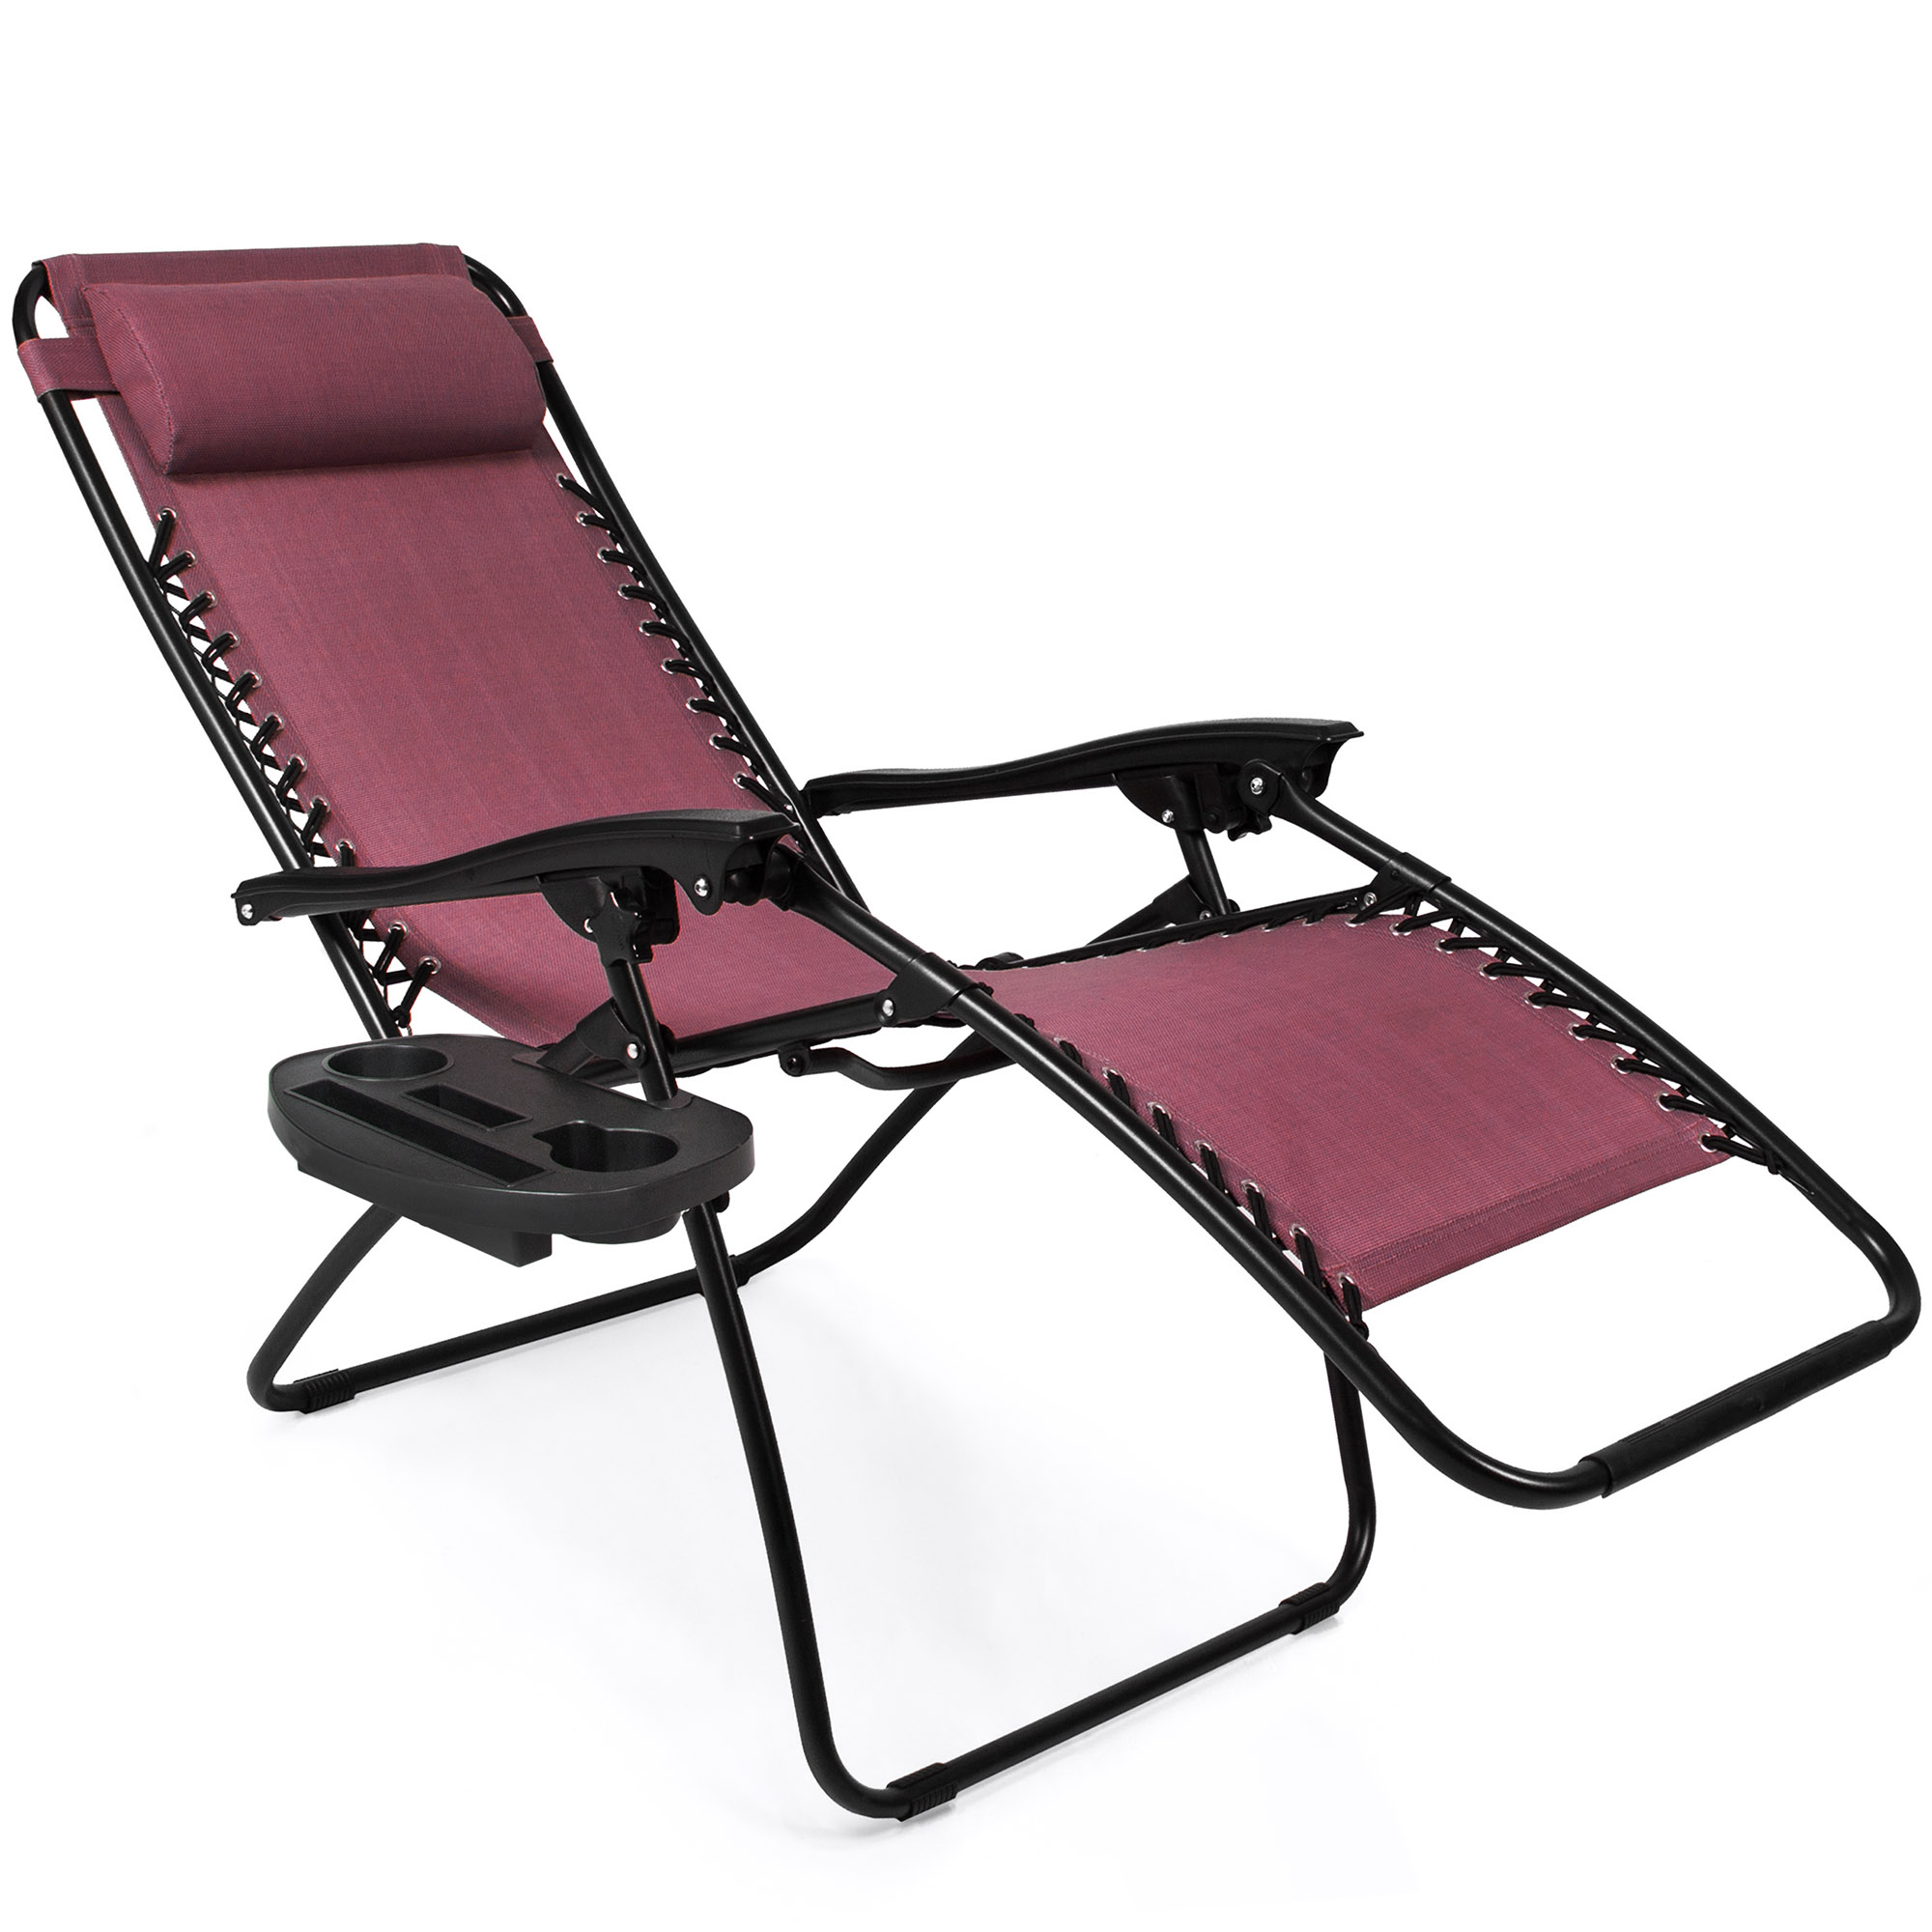 BCP-Set-of-2-Adjustable-Zero-Gravity-Patio-Chair-Recliners-w-Cup-Holders thumbnail 39